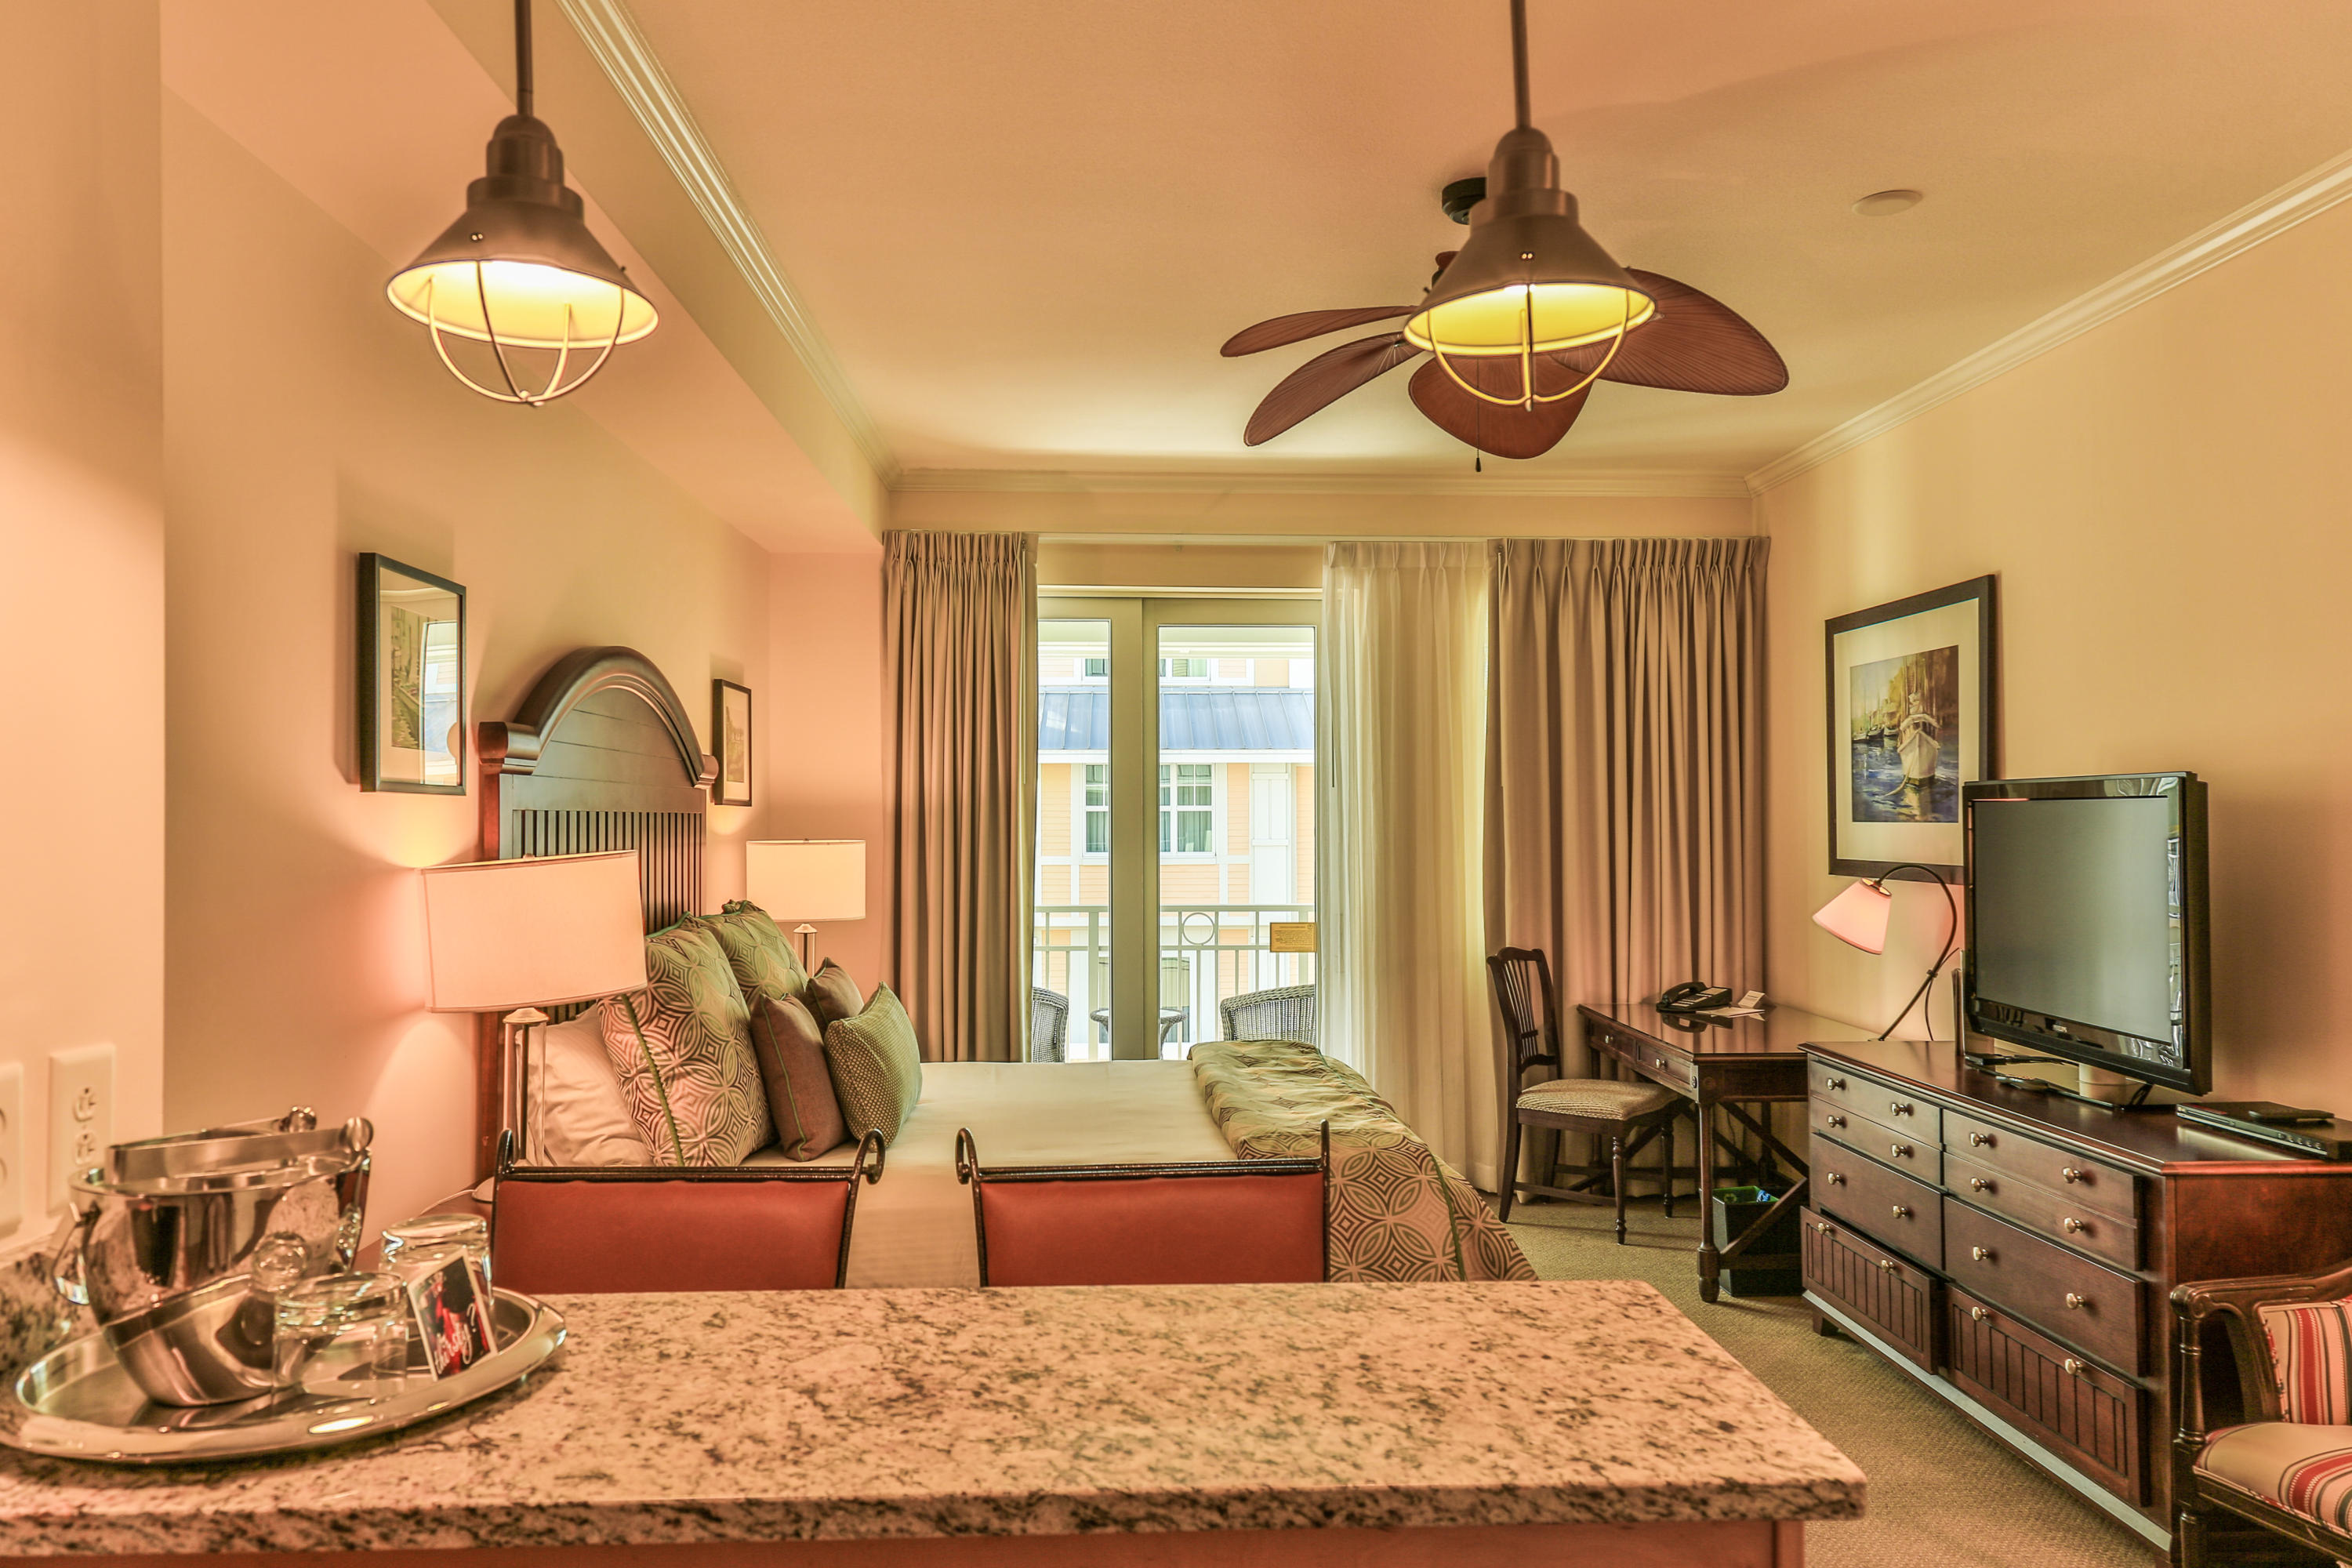 Wild Dunes Homes For Sale - A-408 Village At Wild Dunes, Isle of Palms, SC - 8